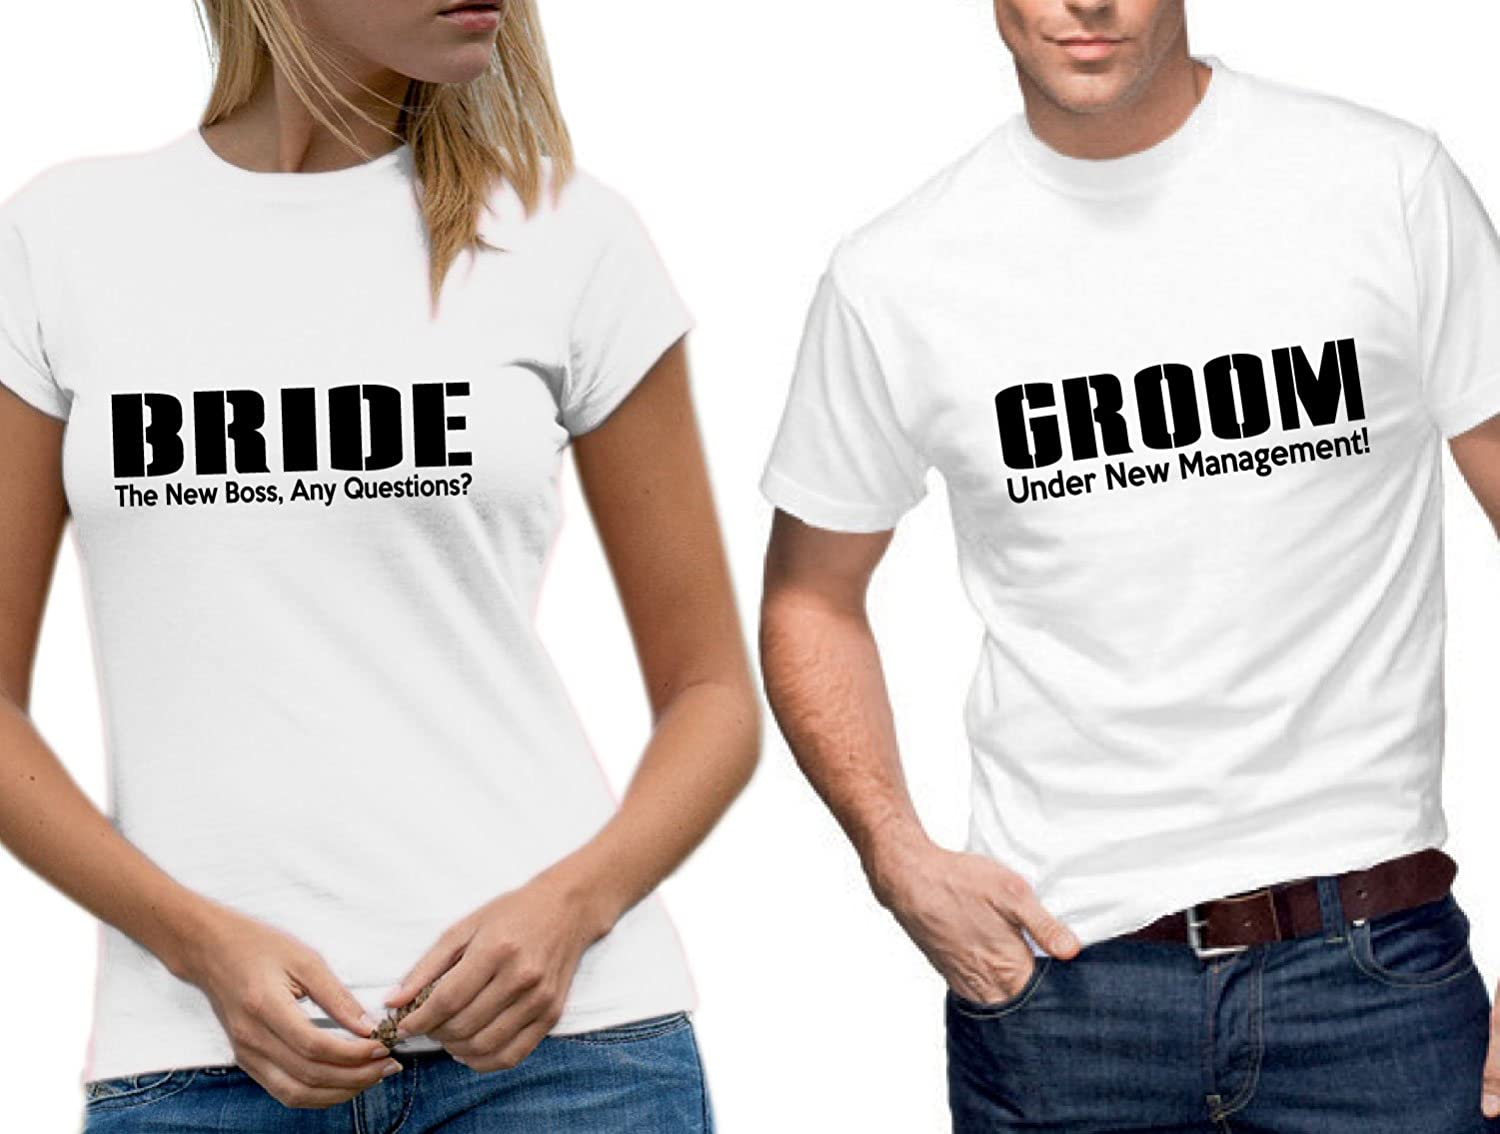 83d40fd942 Under Management Bride & Groom 'Just Married' Wedding T-Shirt Set:  Amazon.co.uk: Clothing